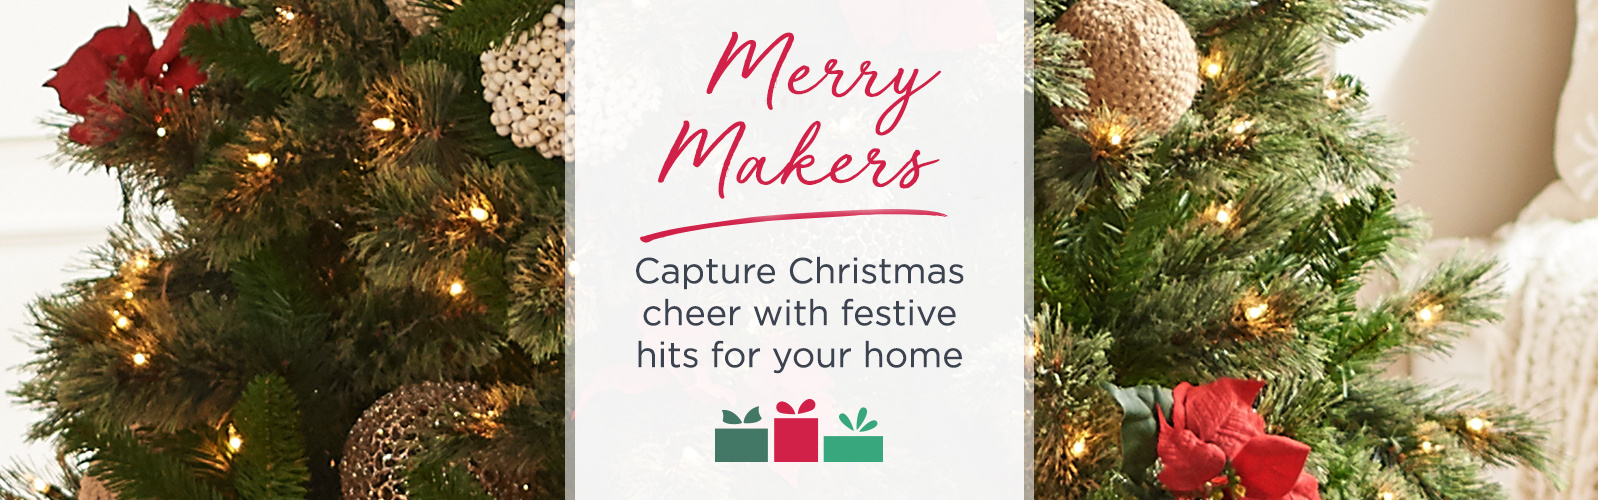 Merry Makers - Capture Christmas cheer with festive hits for your home